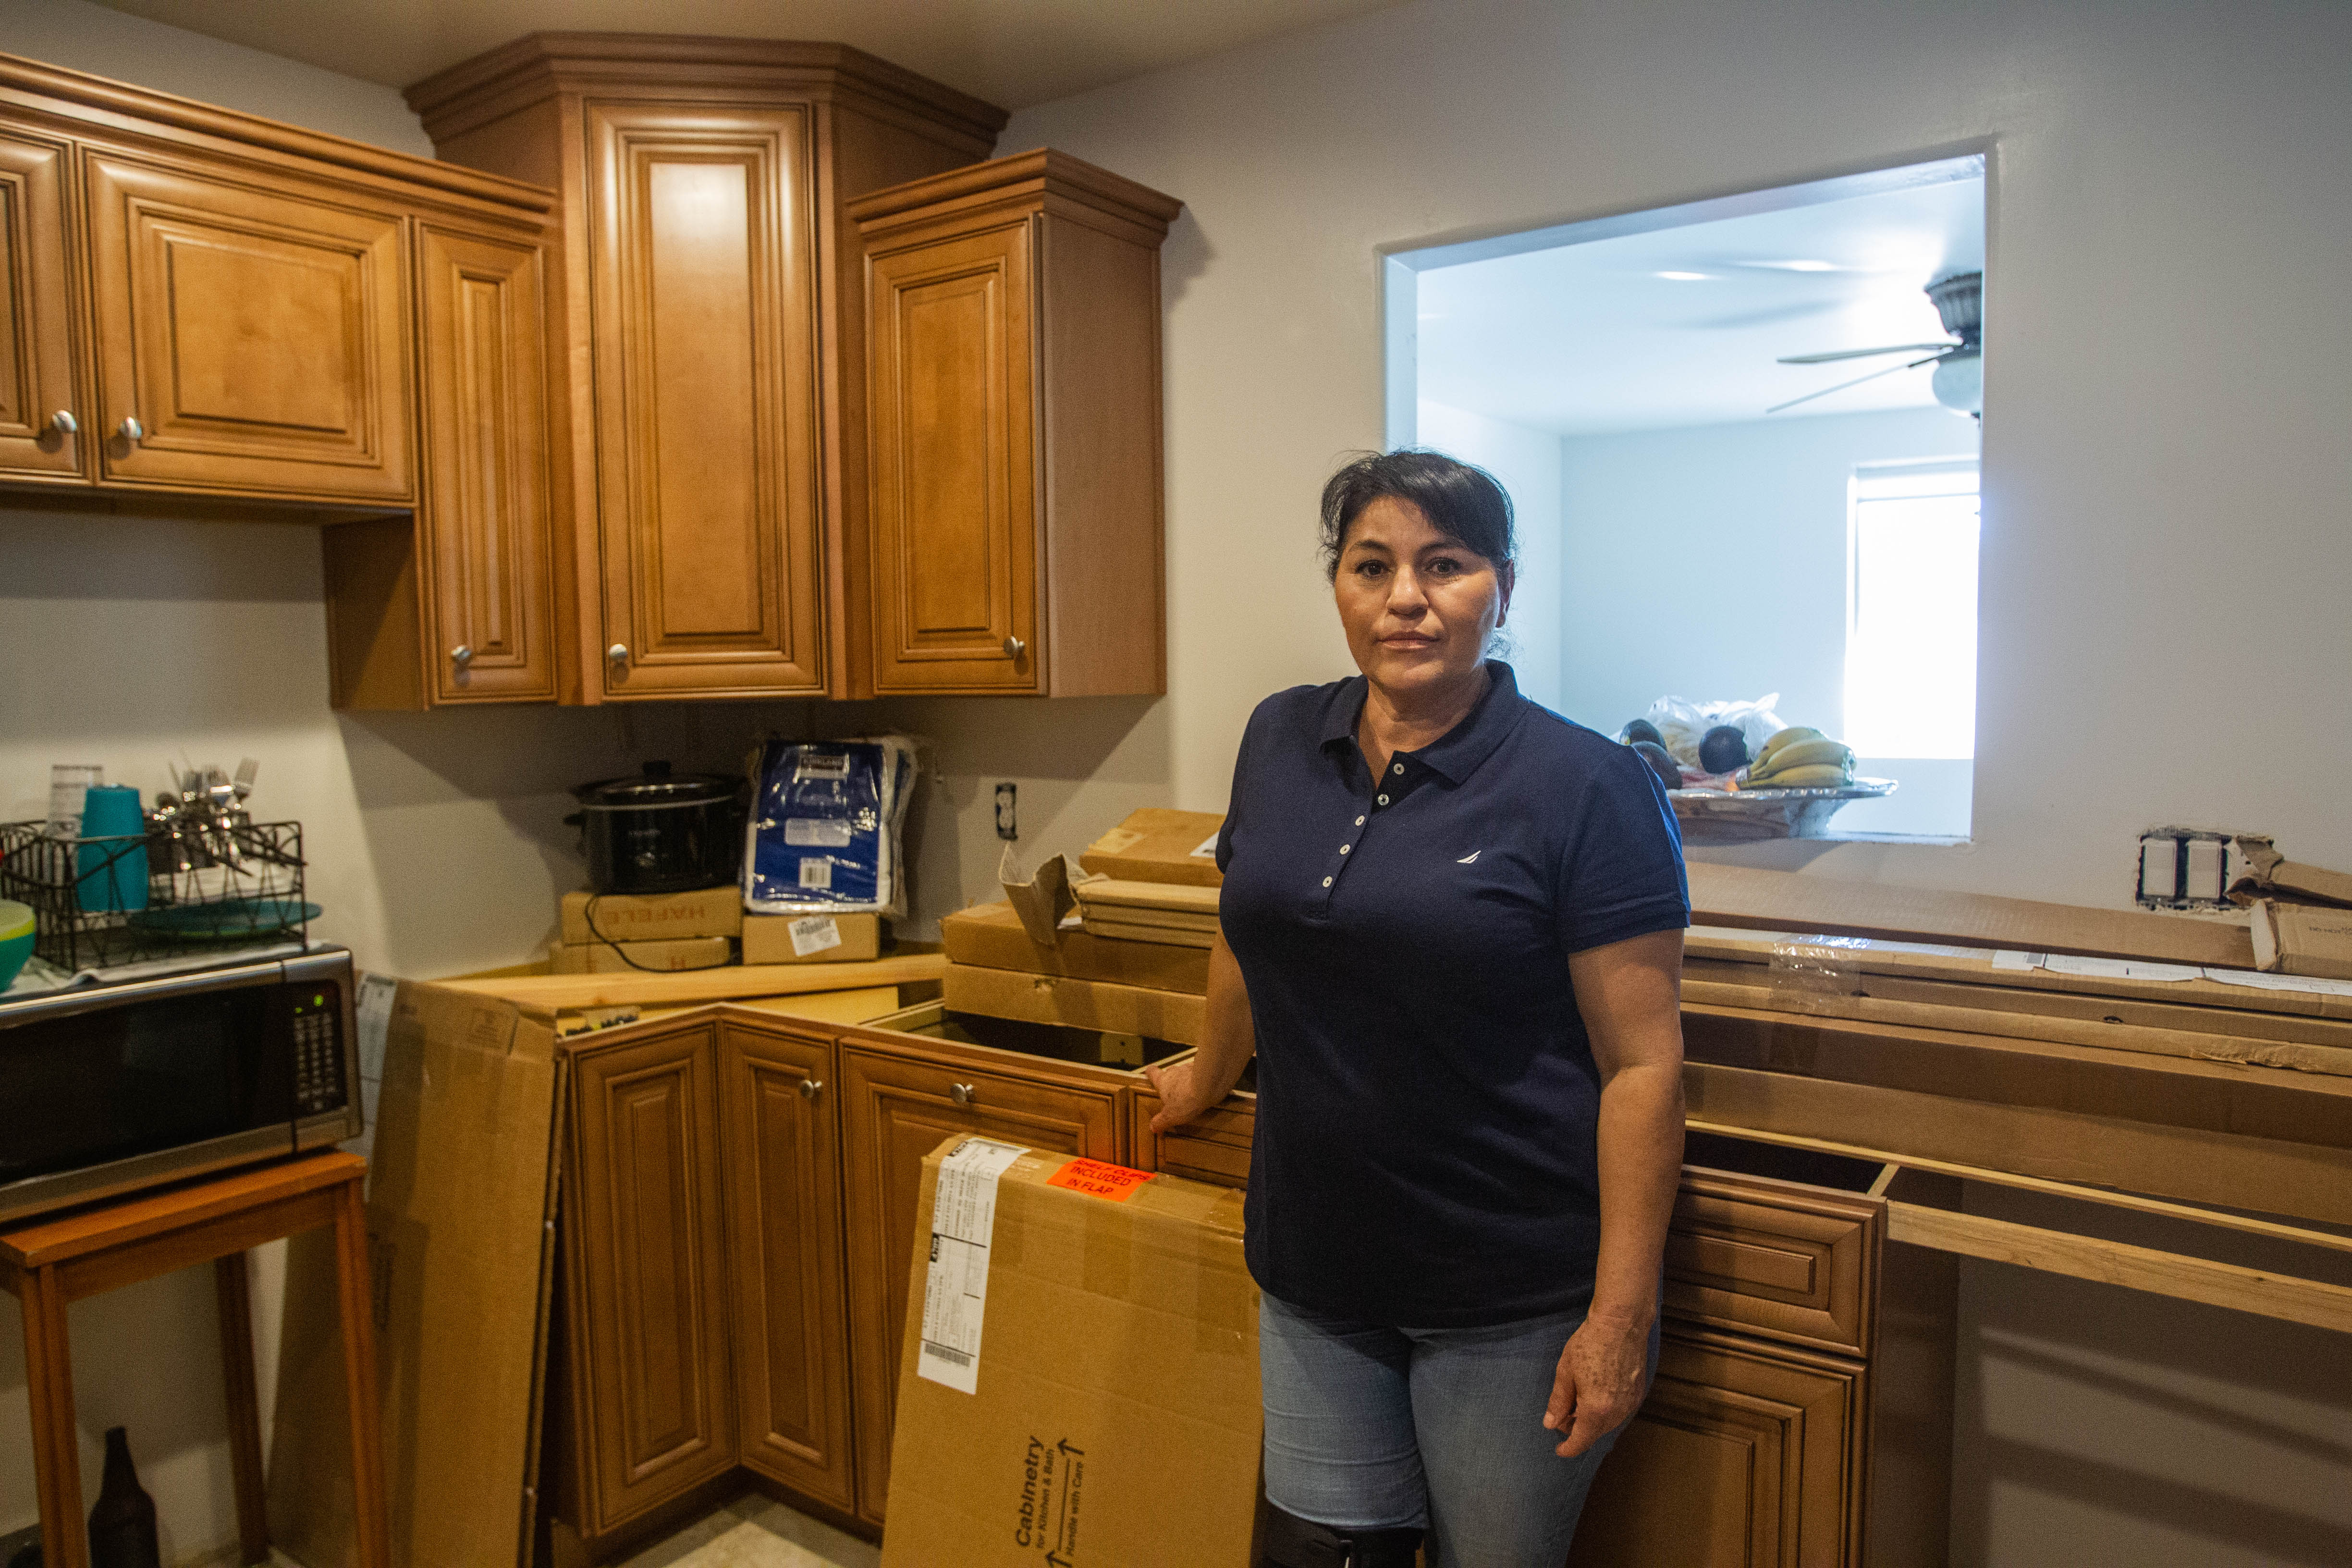 Home Depot kitchen remodel turns into 20 month ordeal for Arizona ...